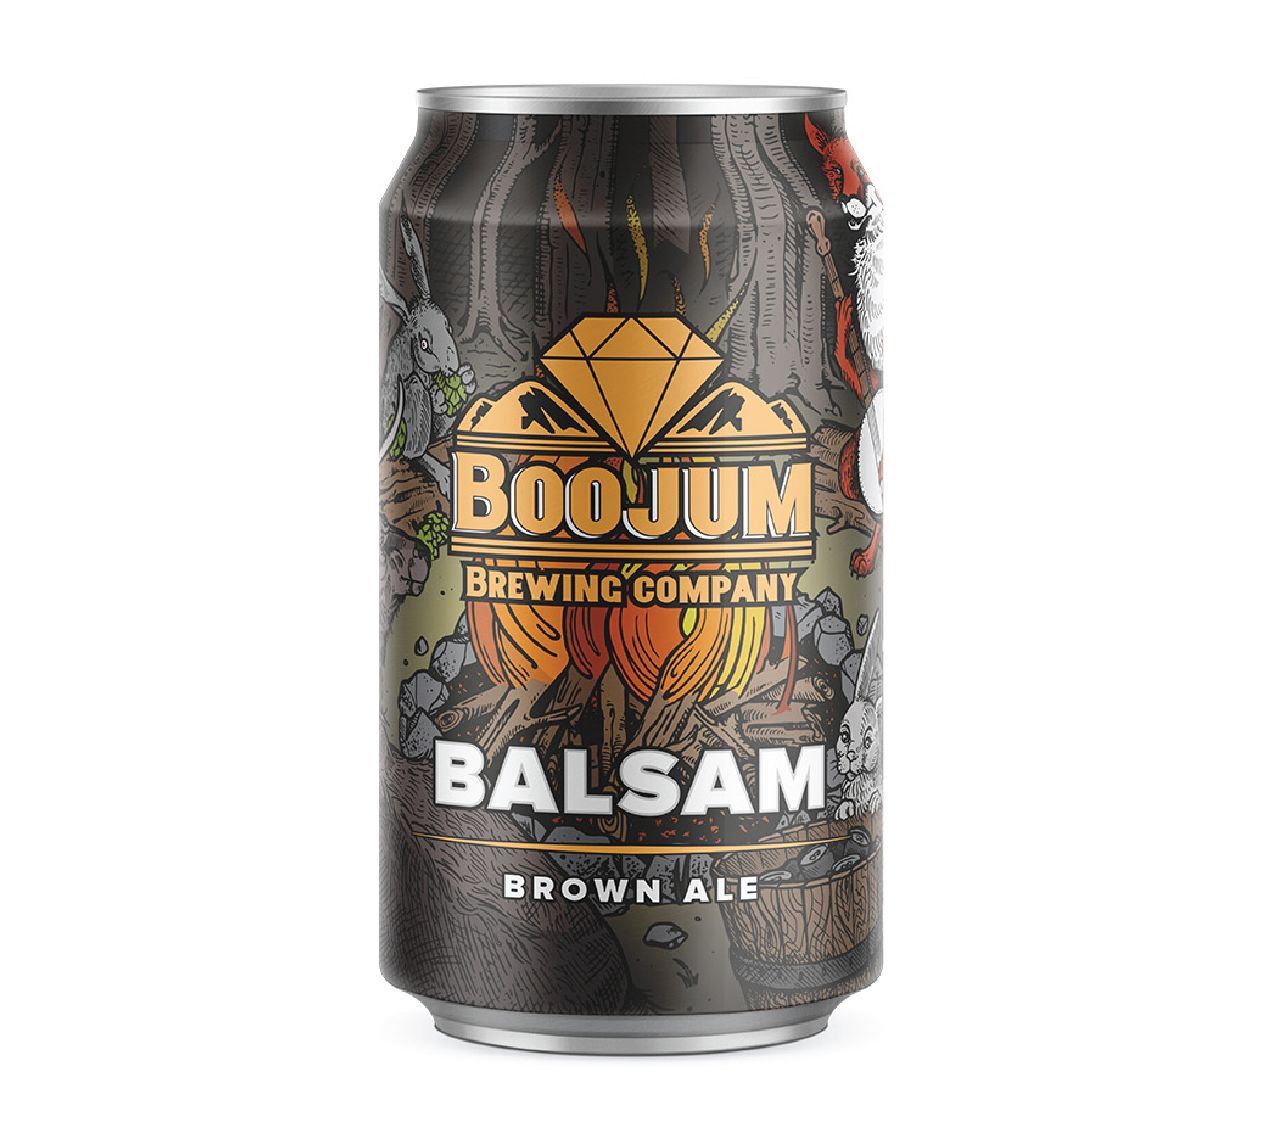 A welcome companion, this beautiful brown ale is flavorful, approachable & easy going. A little bit of roast & a little bit of toast with a nutty, caramel flavor and a smooth, light finish make you want to gather round & crack one open.  5% 18 IBUS